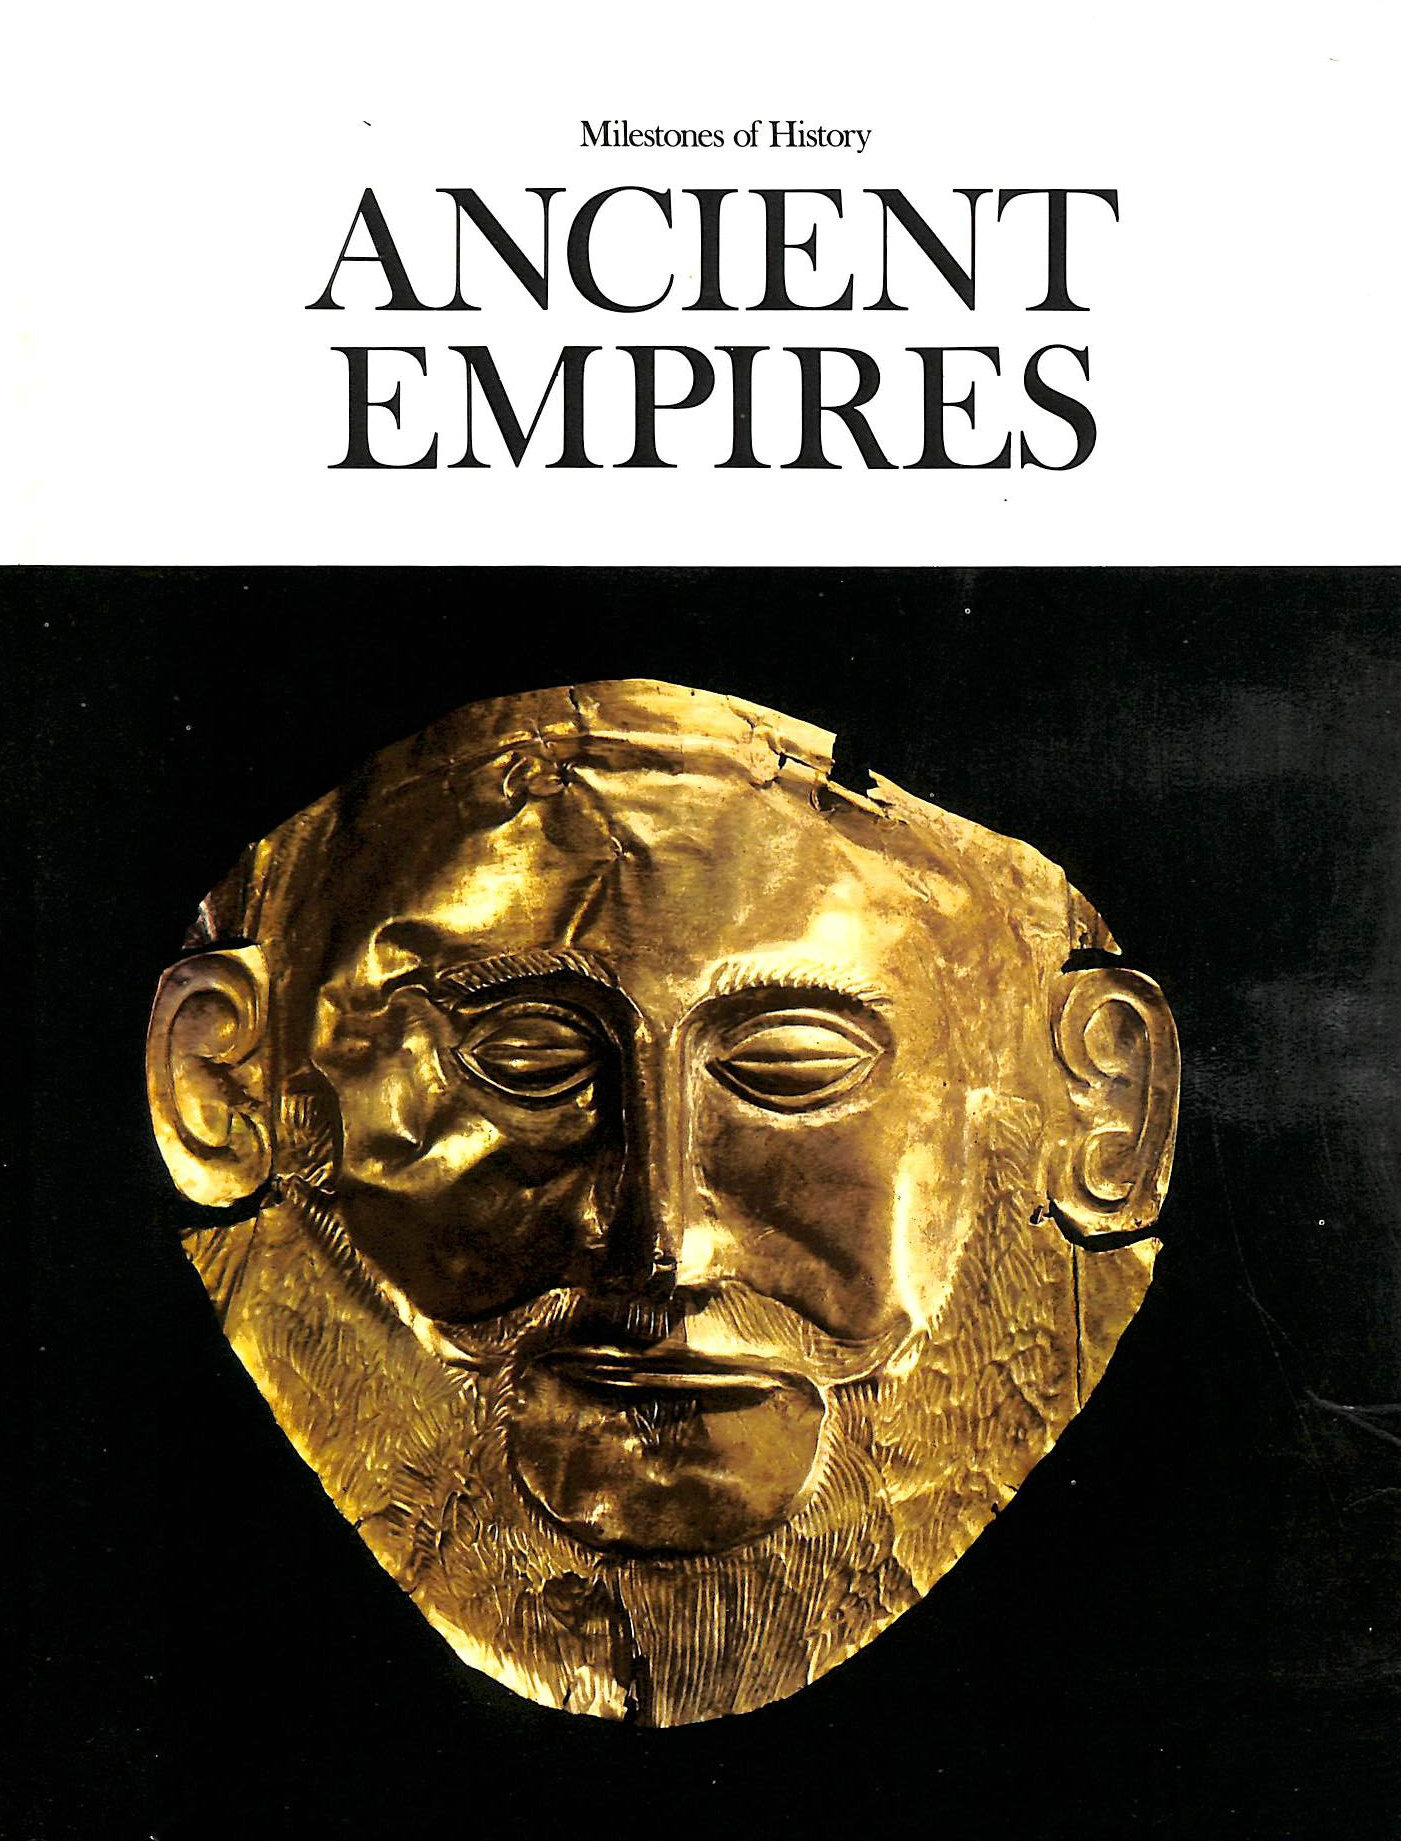 Image for Ancient Empires: Milestones of History